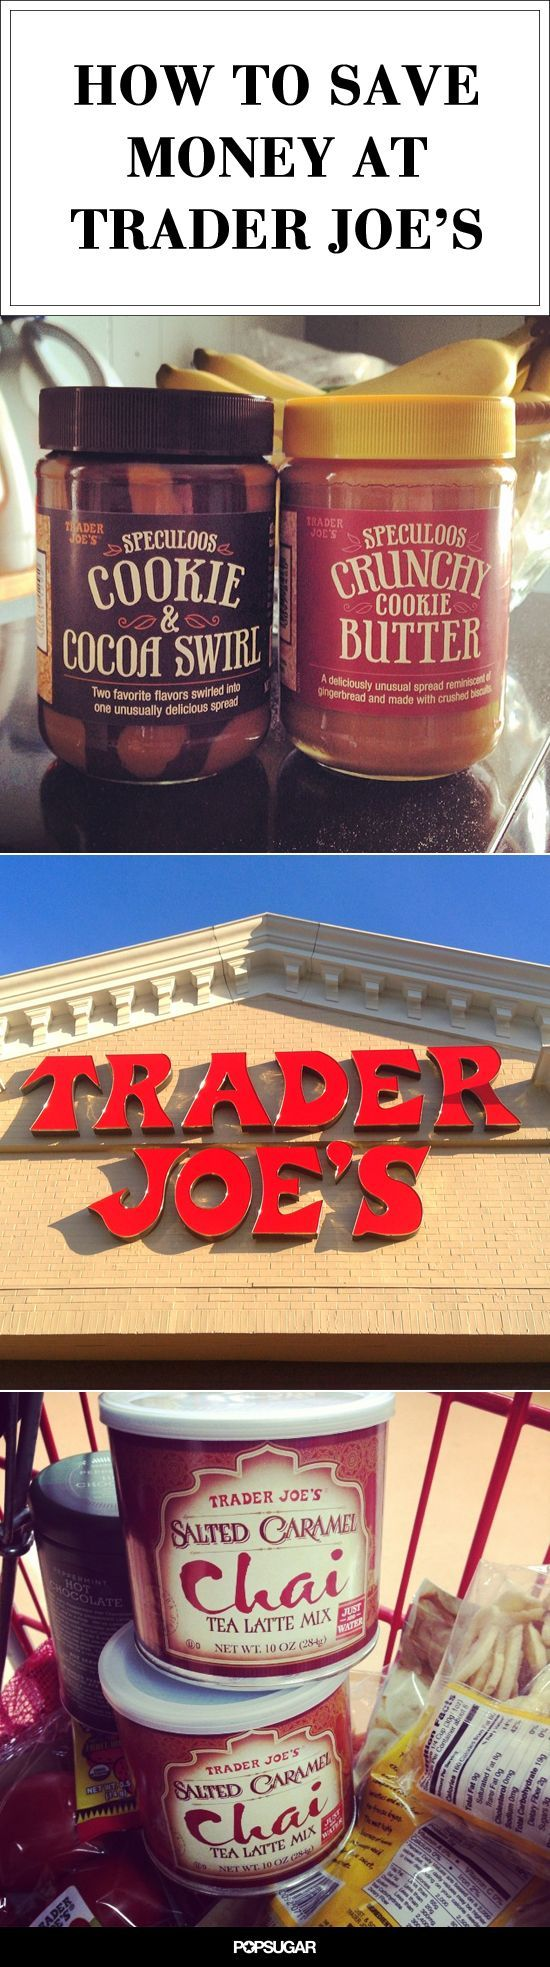 Instead of skipping out on scrumptious food, simply follow these tips to drastically lower your next Trader Joe's grocery bill.